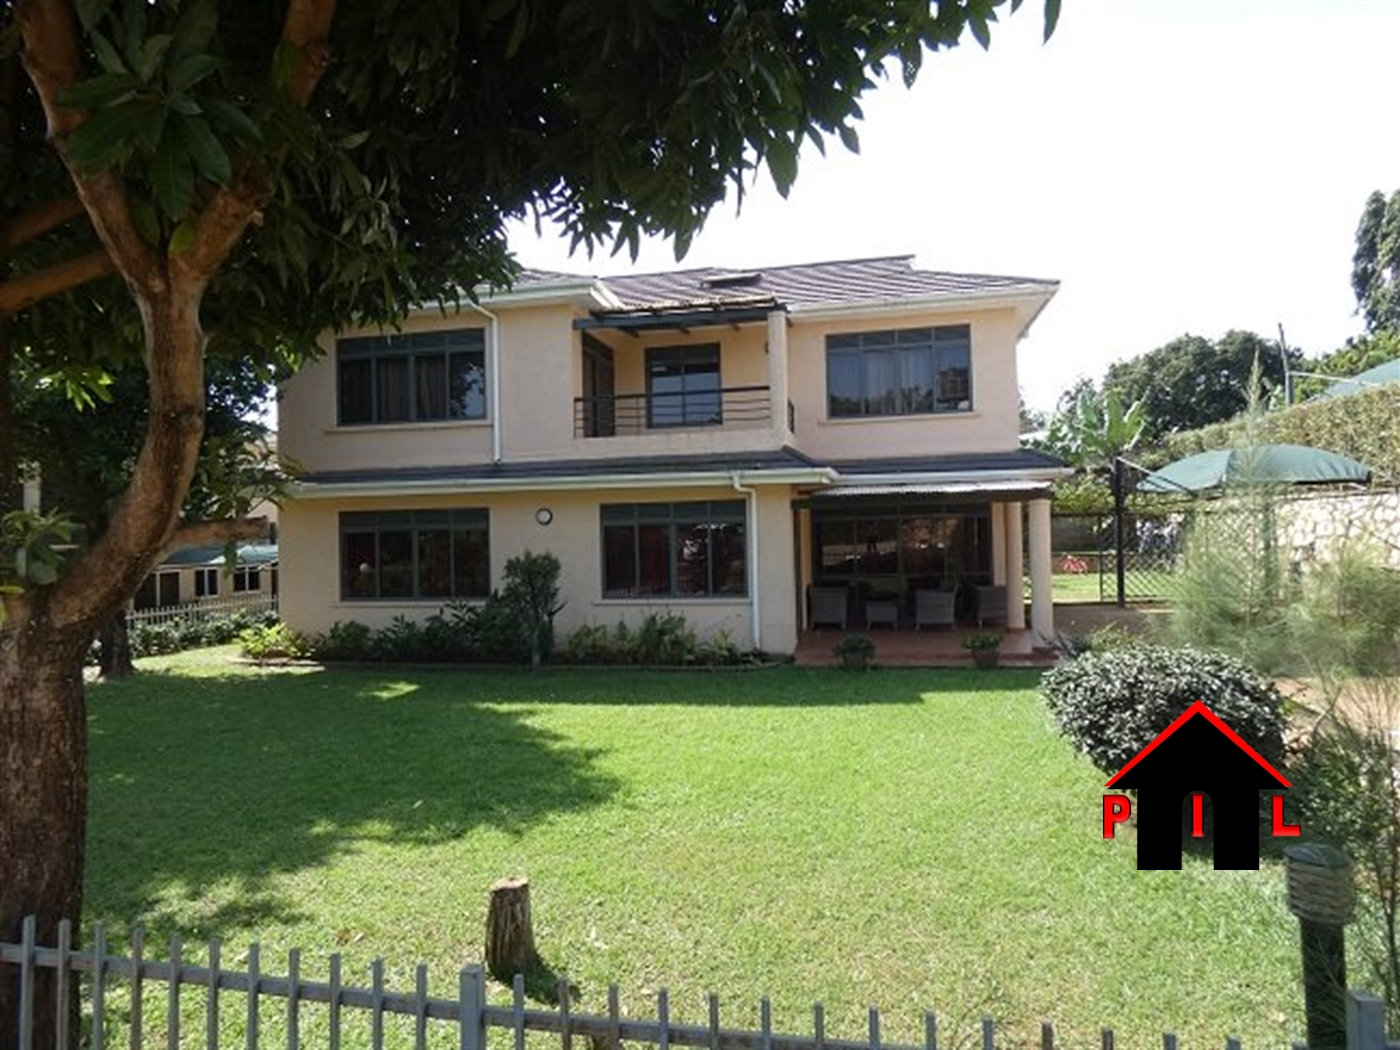 Storyed house for sale in Munyonyo Kampala